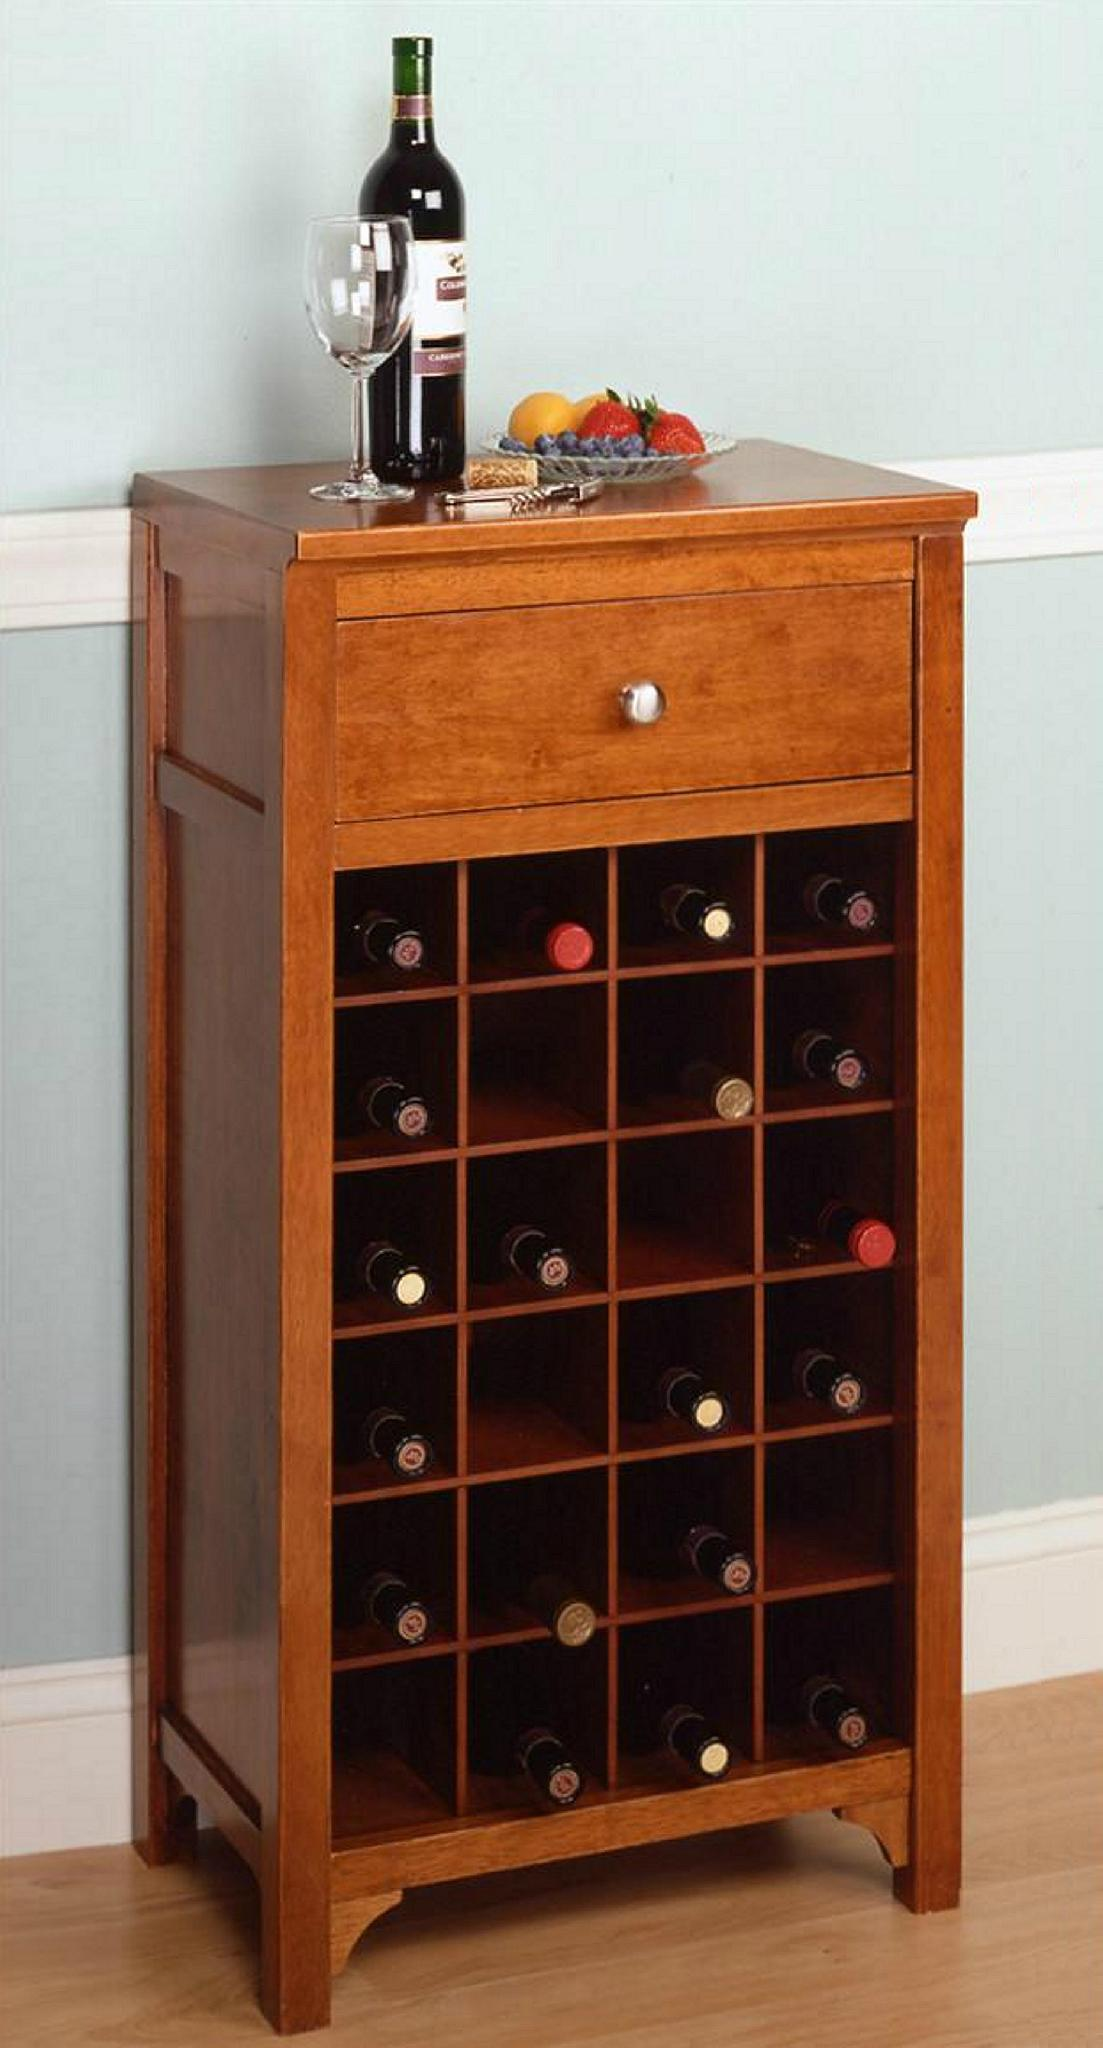 24 bottles wine rack small home bar cabinet furniture for for Home furniture for sale